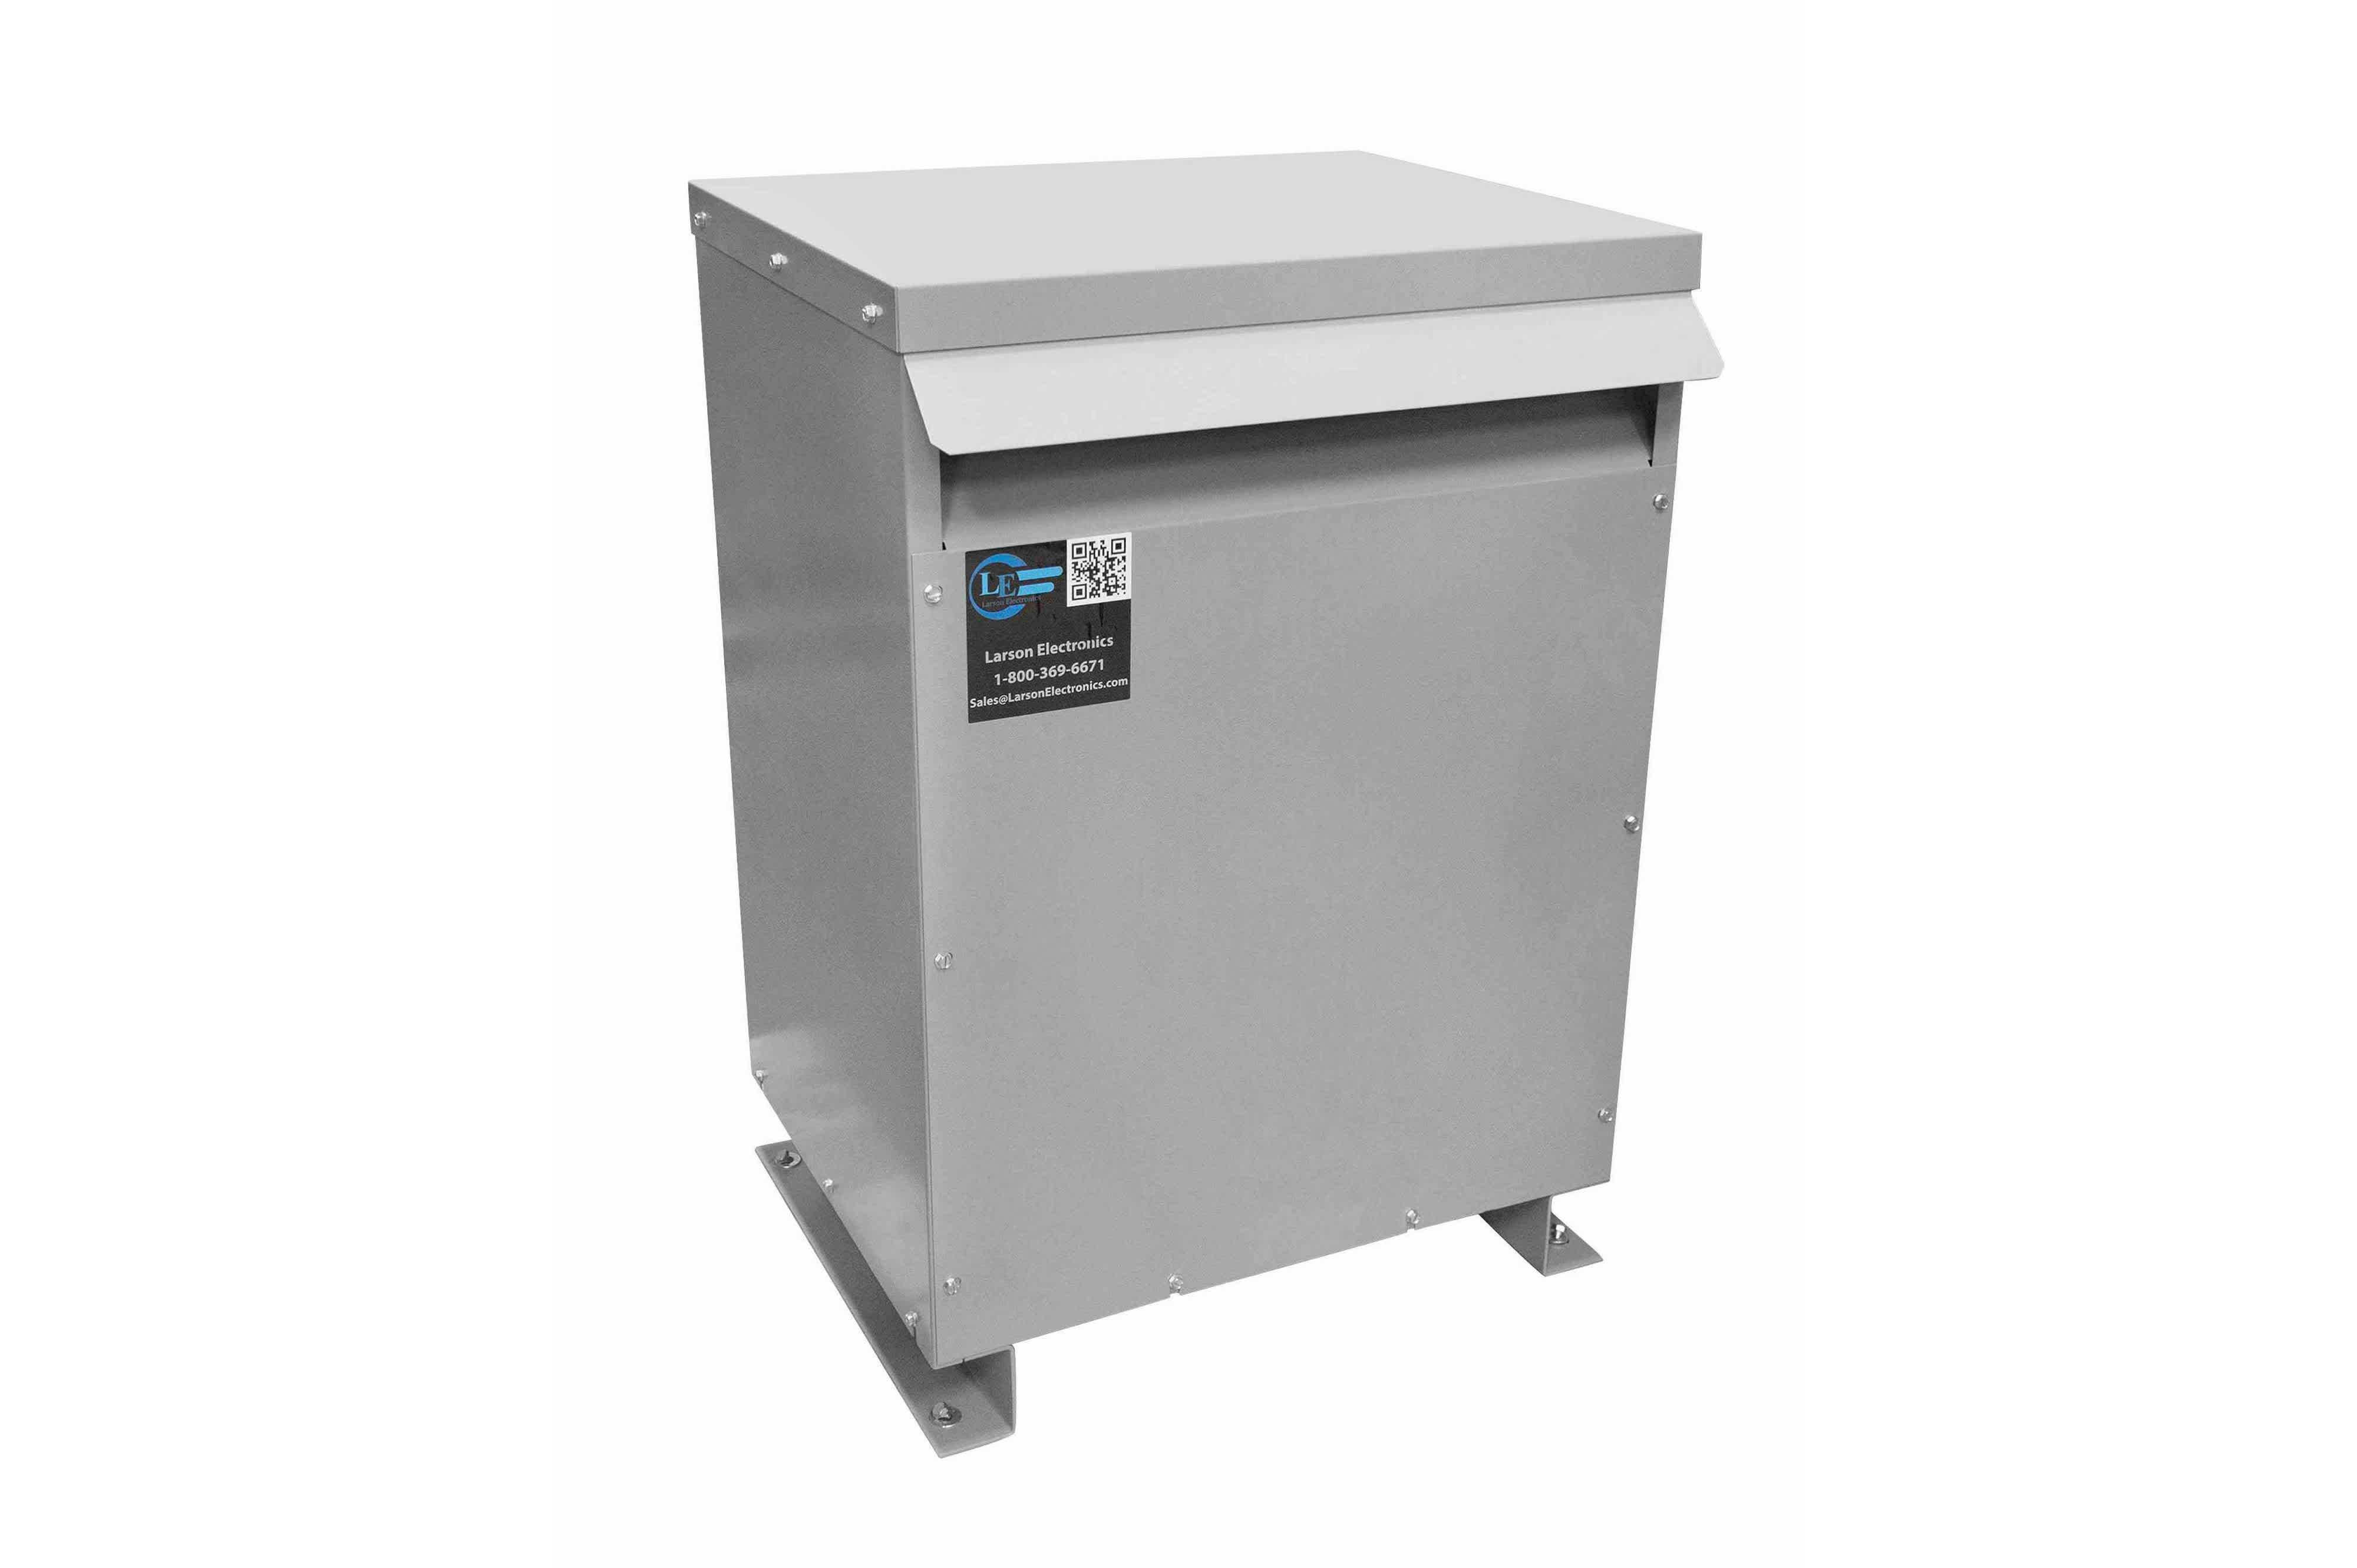 50 kVA 3PH Isolation Transformer, 480V Wye Primary, 600Y/347 Wye-N Secondary, N3R, Ventilated, 60 Hz